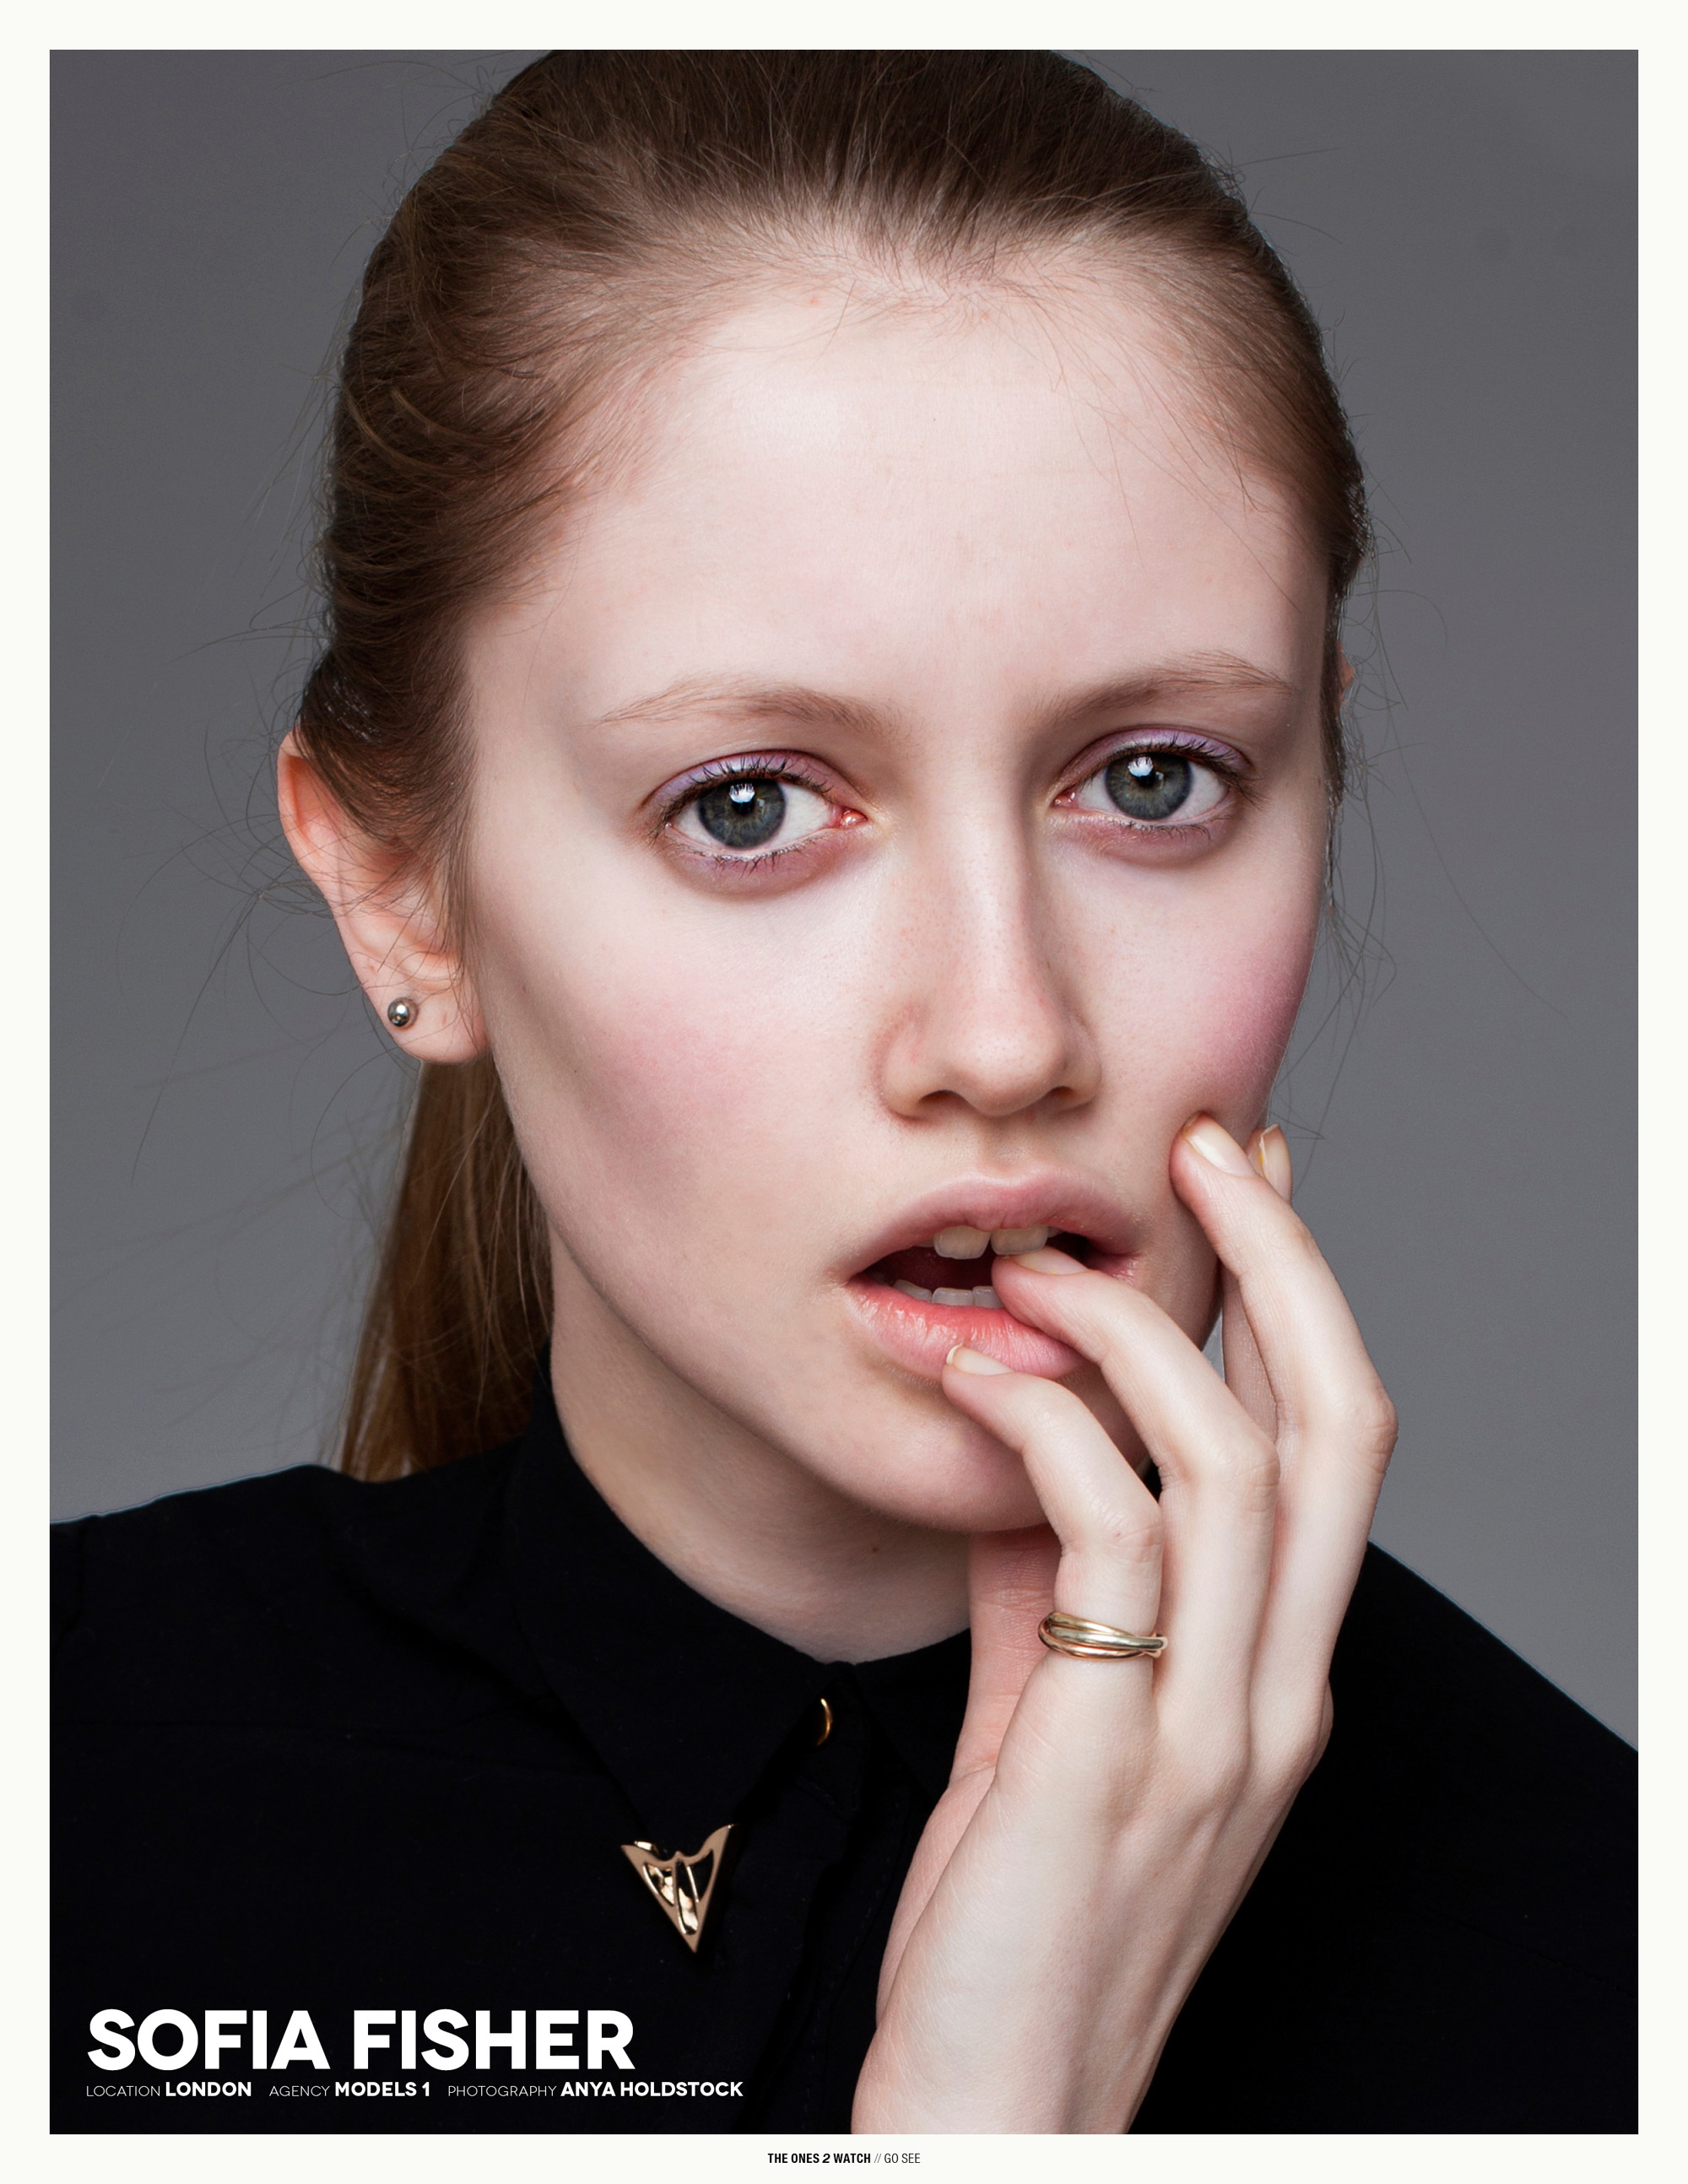 gosee-london-sofia@models1-anyaholdstock